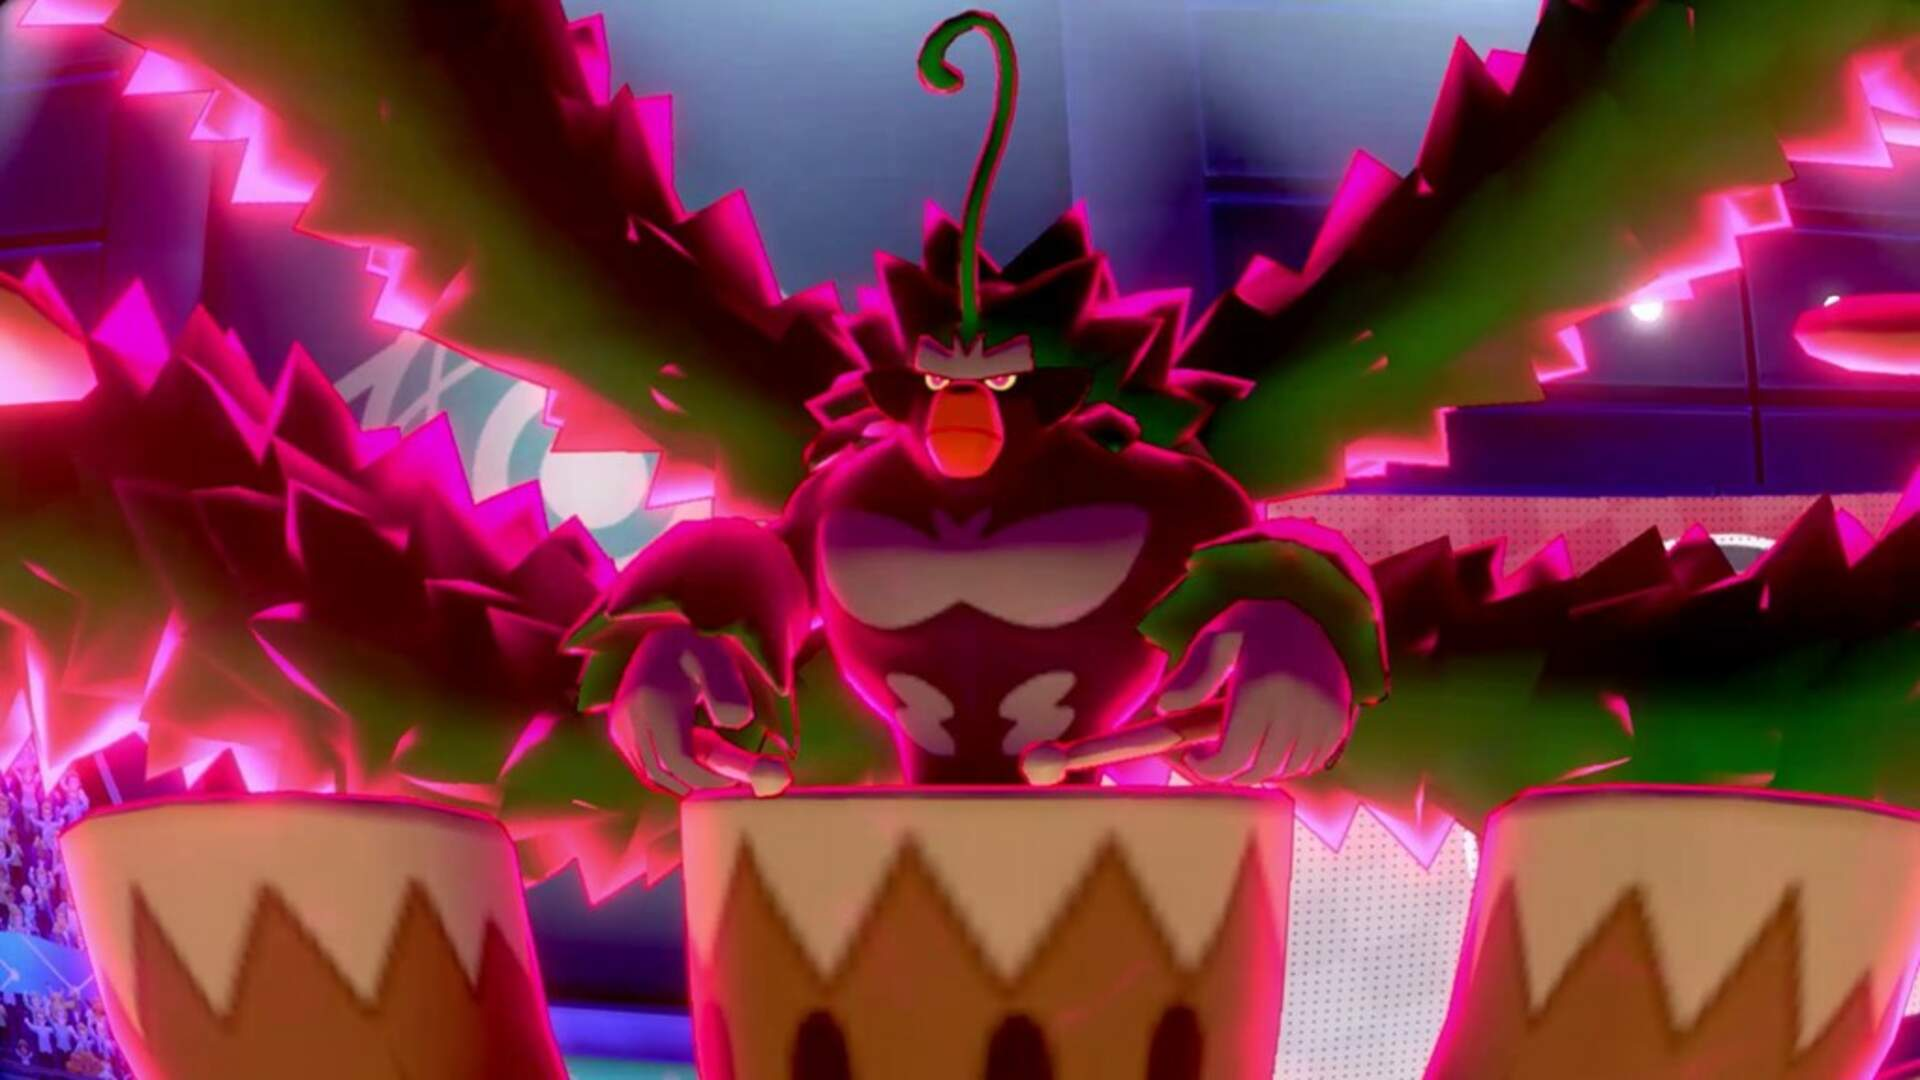 Pokemon Sword and Shield's Isle of Armor Expansion Launches in June